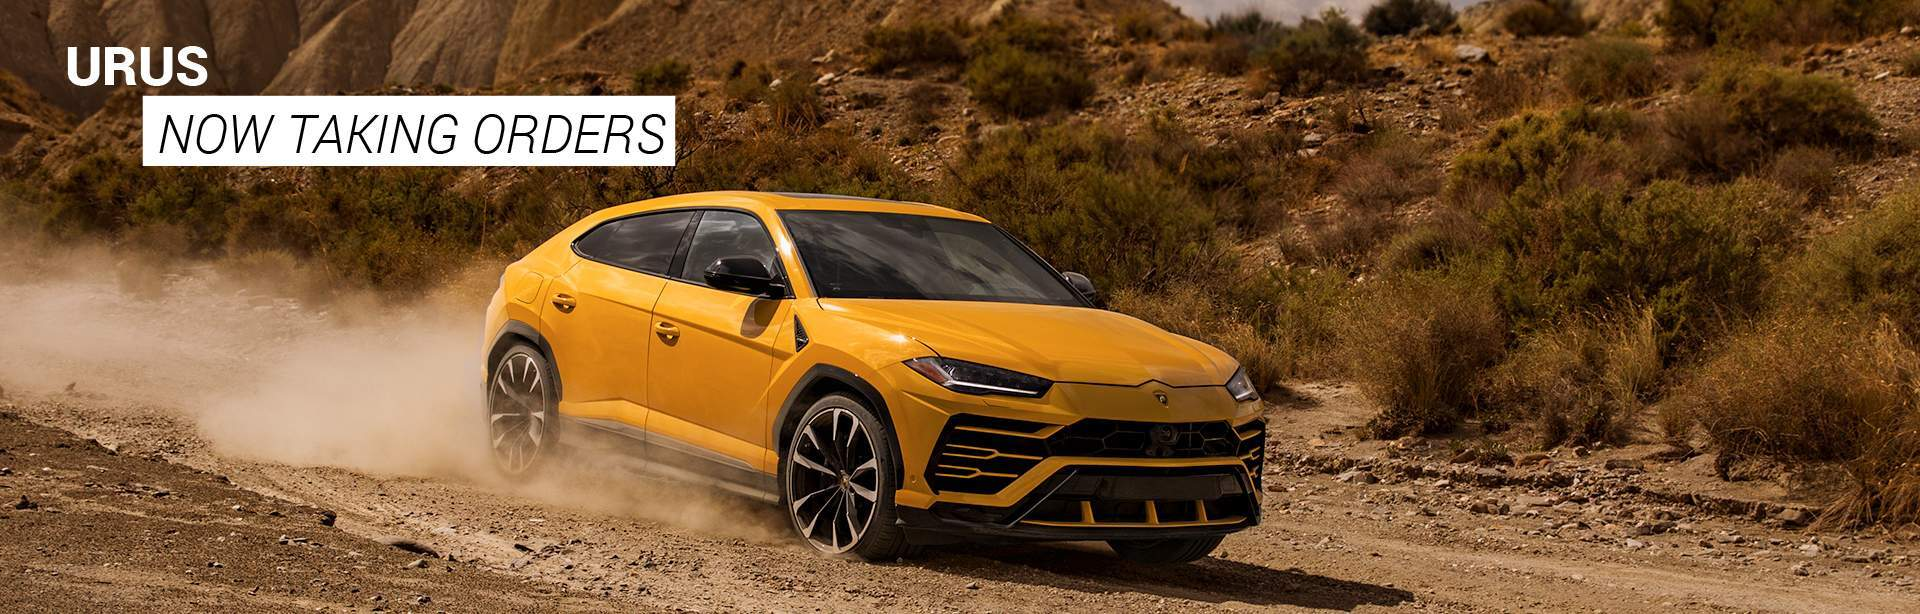 Urus - Now taking orders